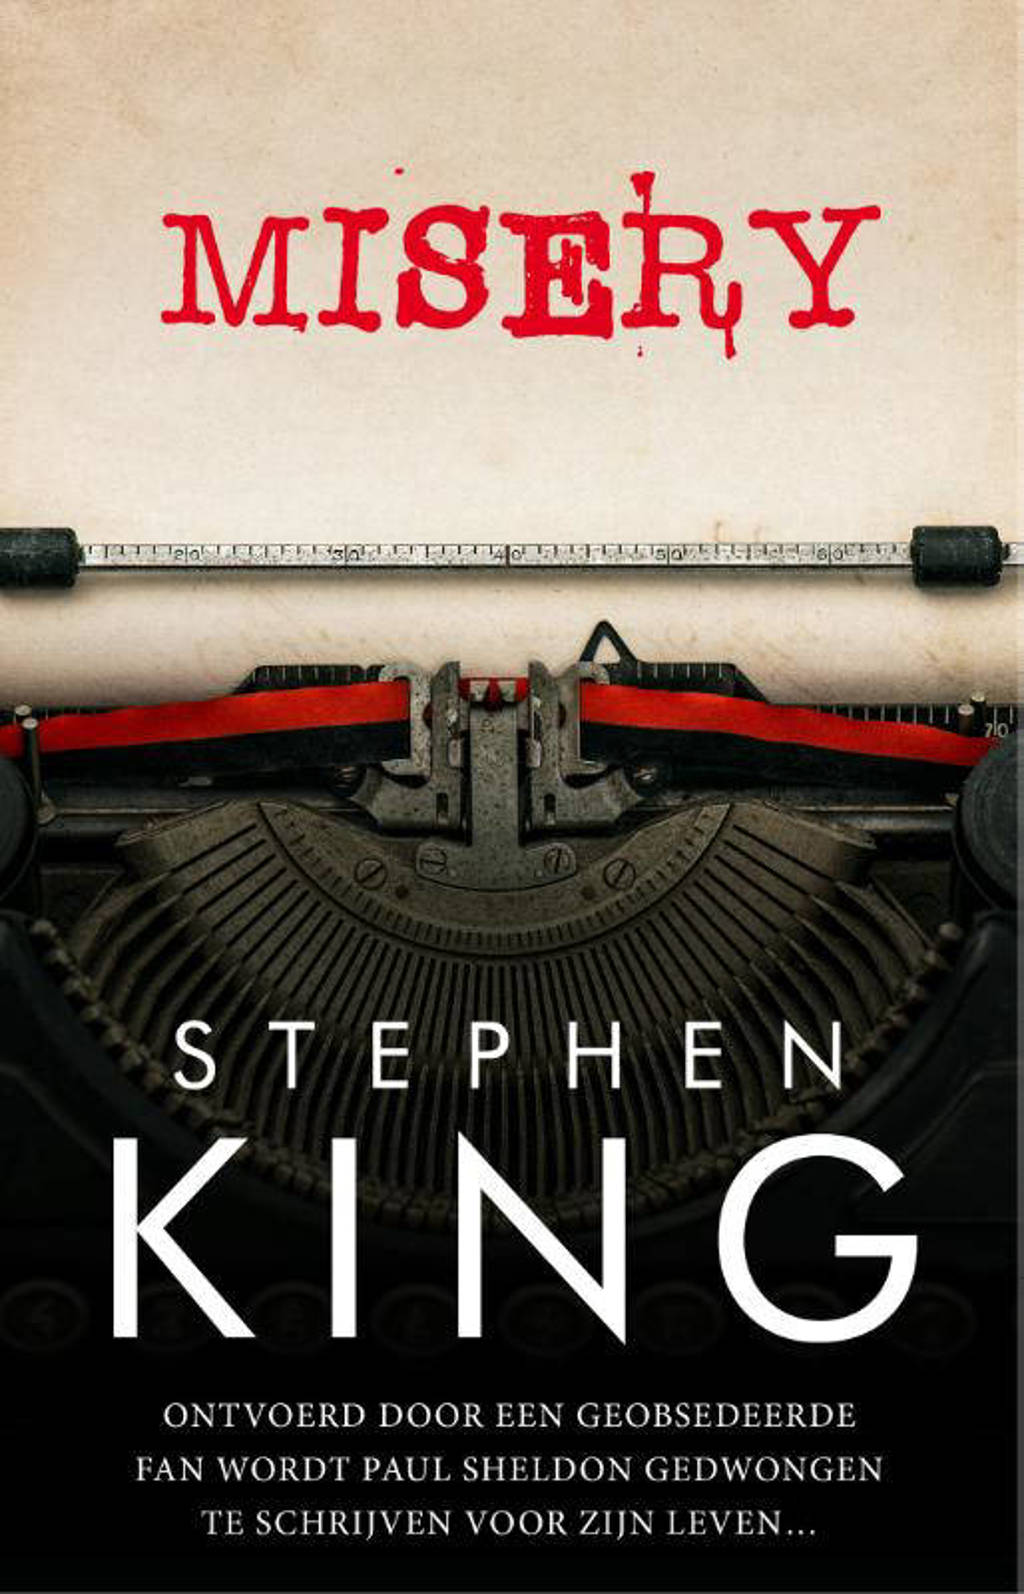 Golden Oldies – Stephen King's Misery